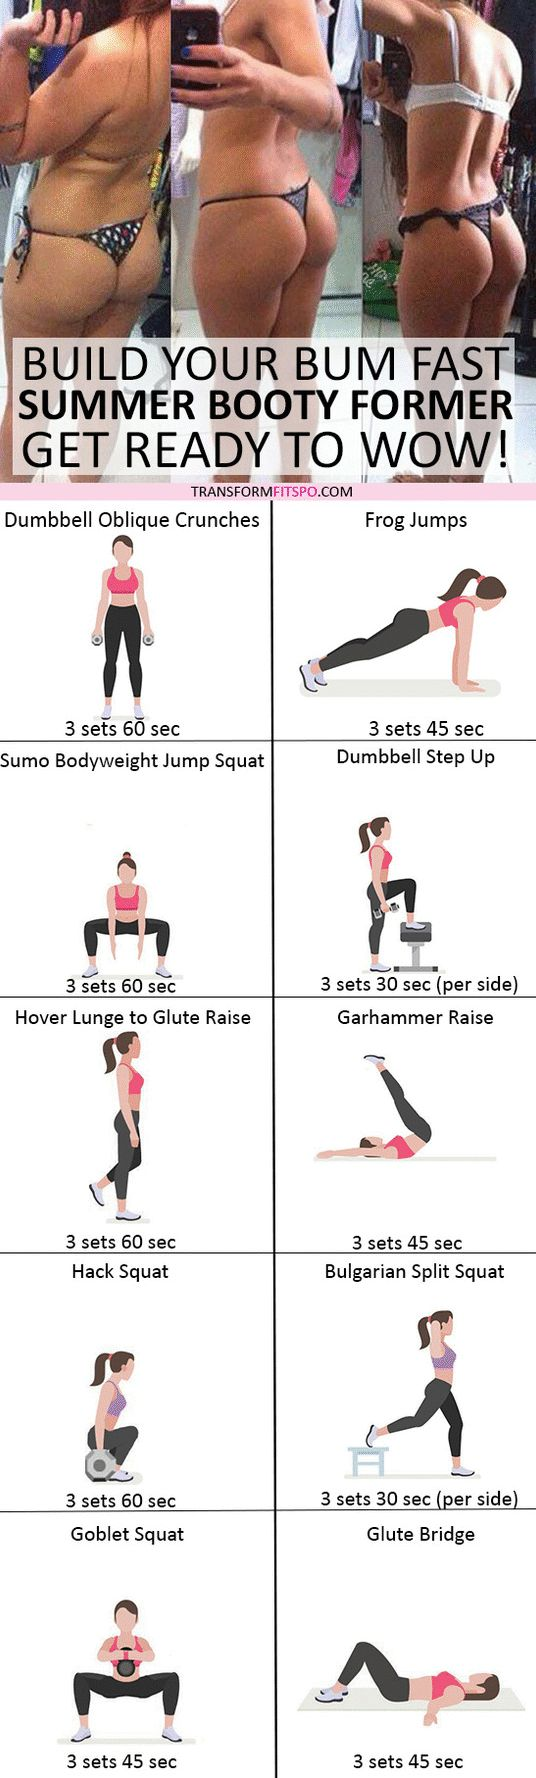 #womensworkout #workout #femalefitness Repin and share if this workout unleashed your summer booty! Click the pin for the full workout. #healthandfitnesstips